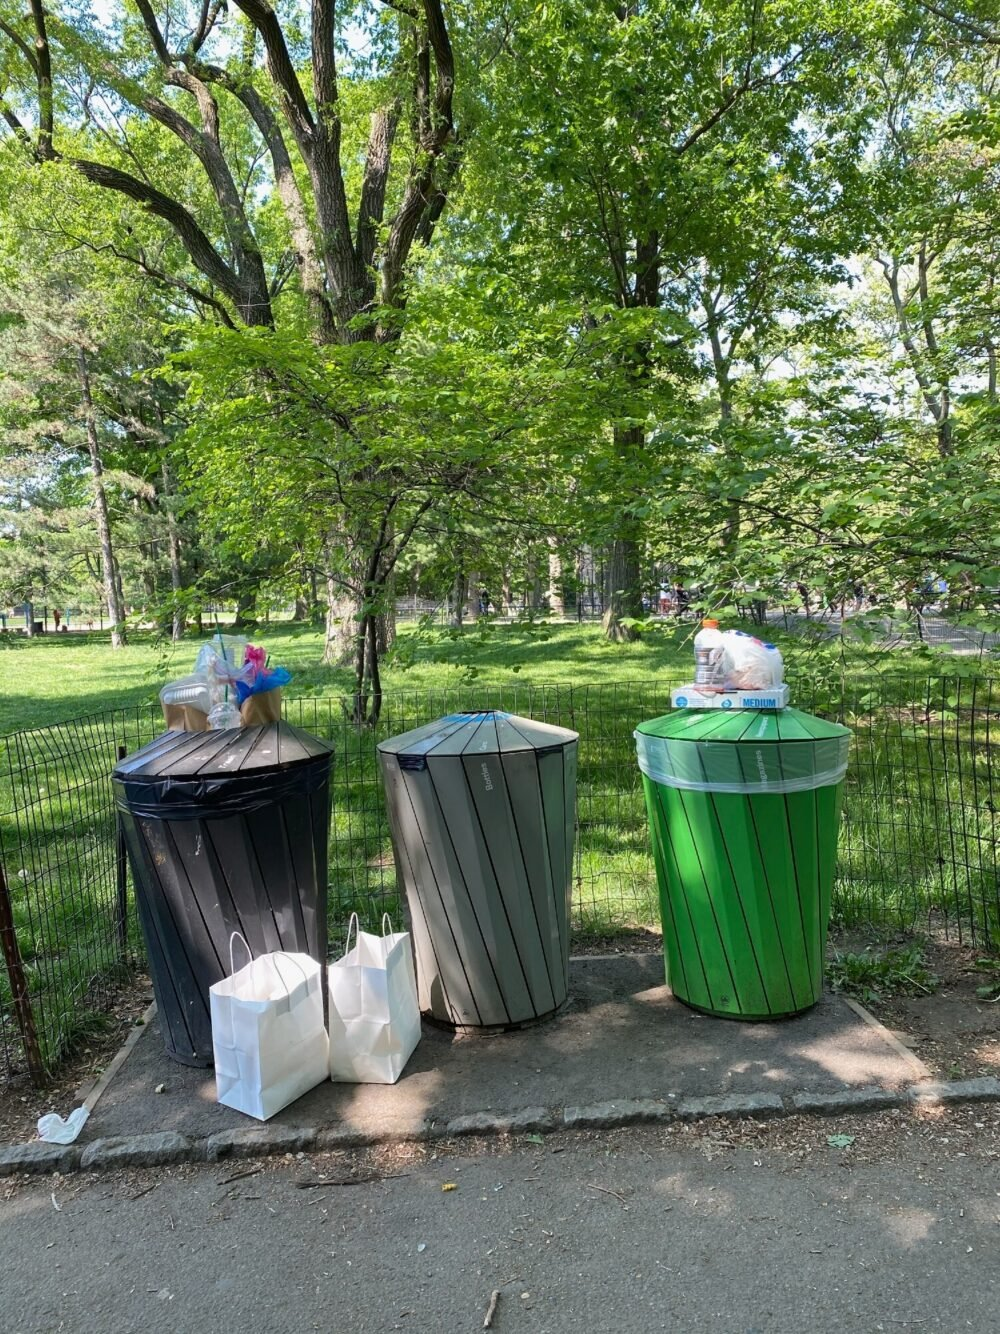 Trash cans pictured full to overflowing